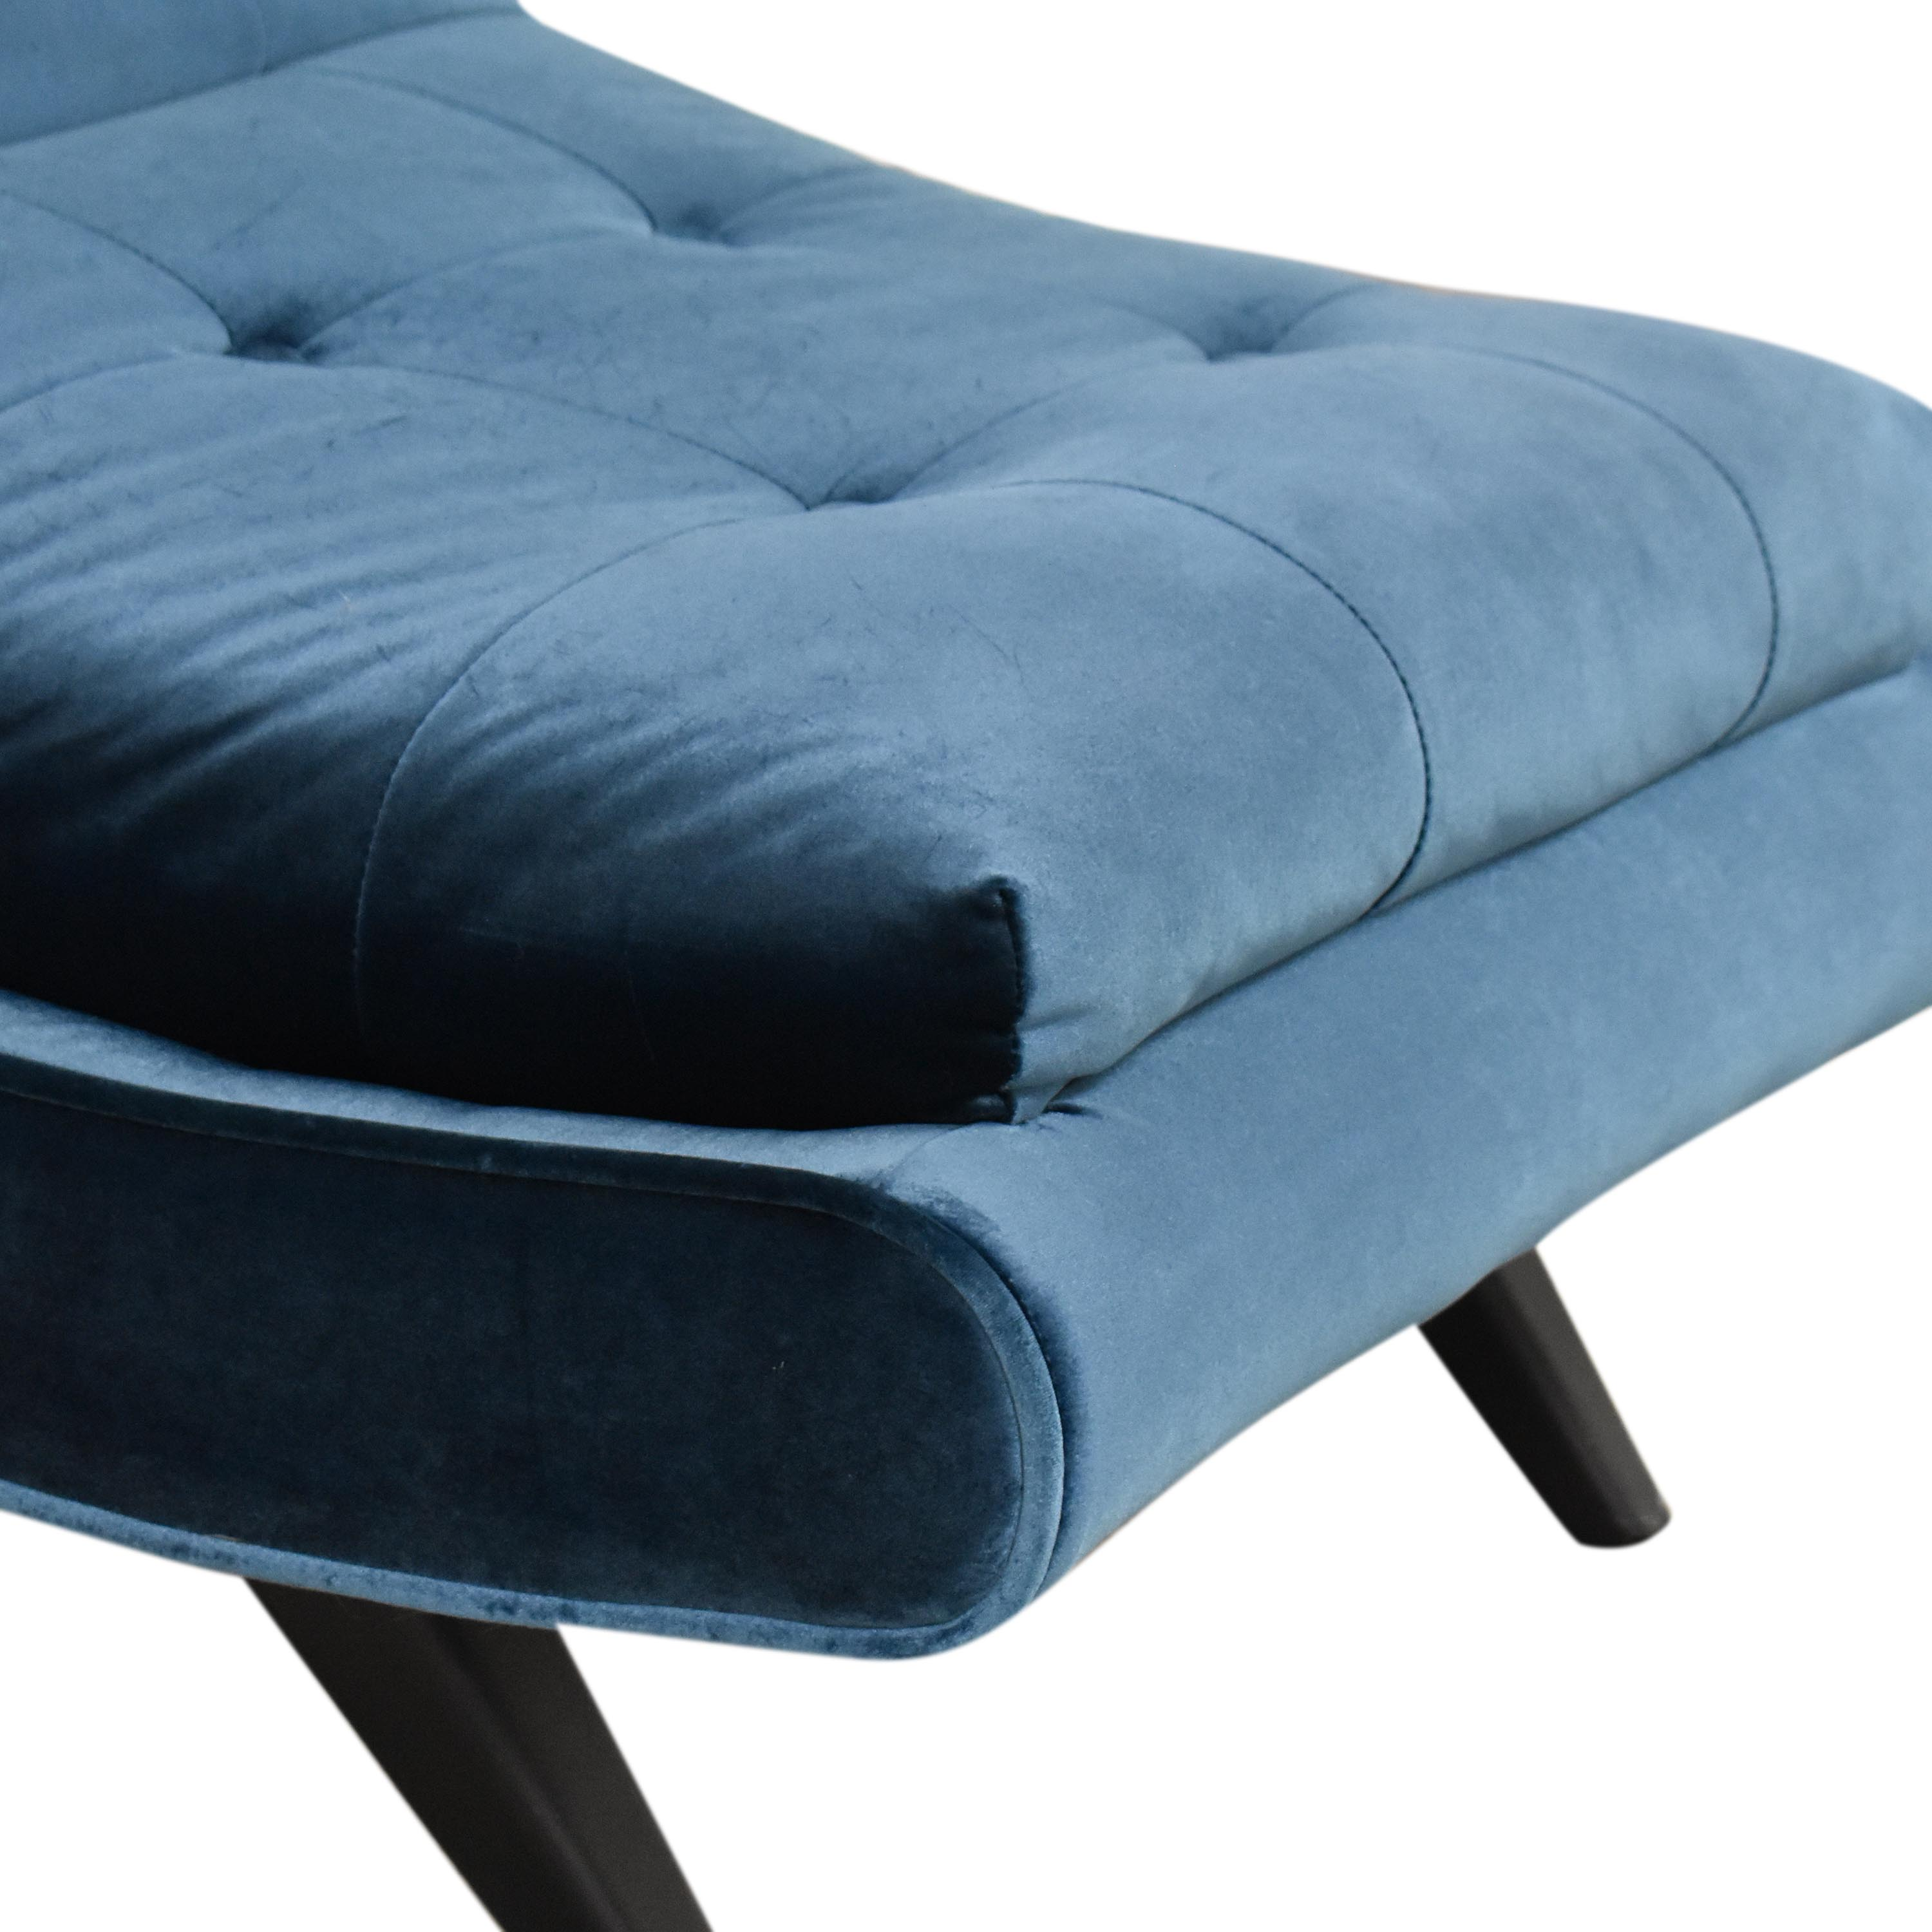 shop Armen Living 5th Avenue Armless Swayback Lounge Chair Armen Living Chairs